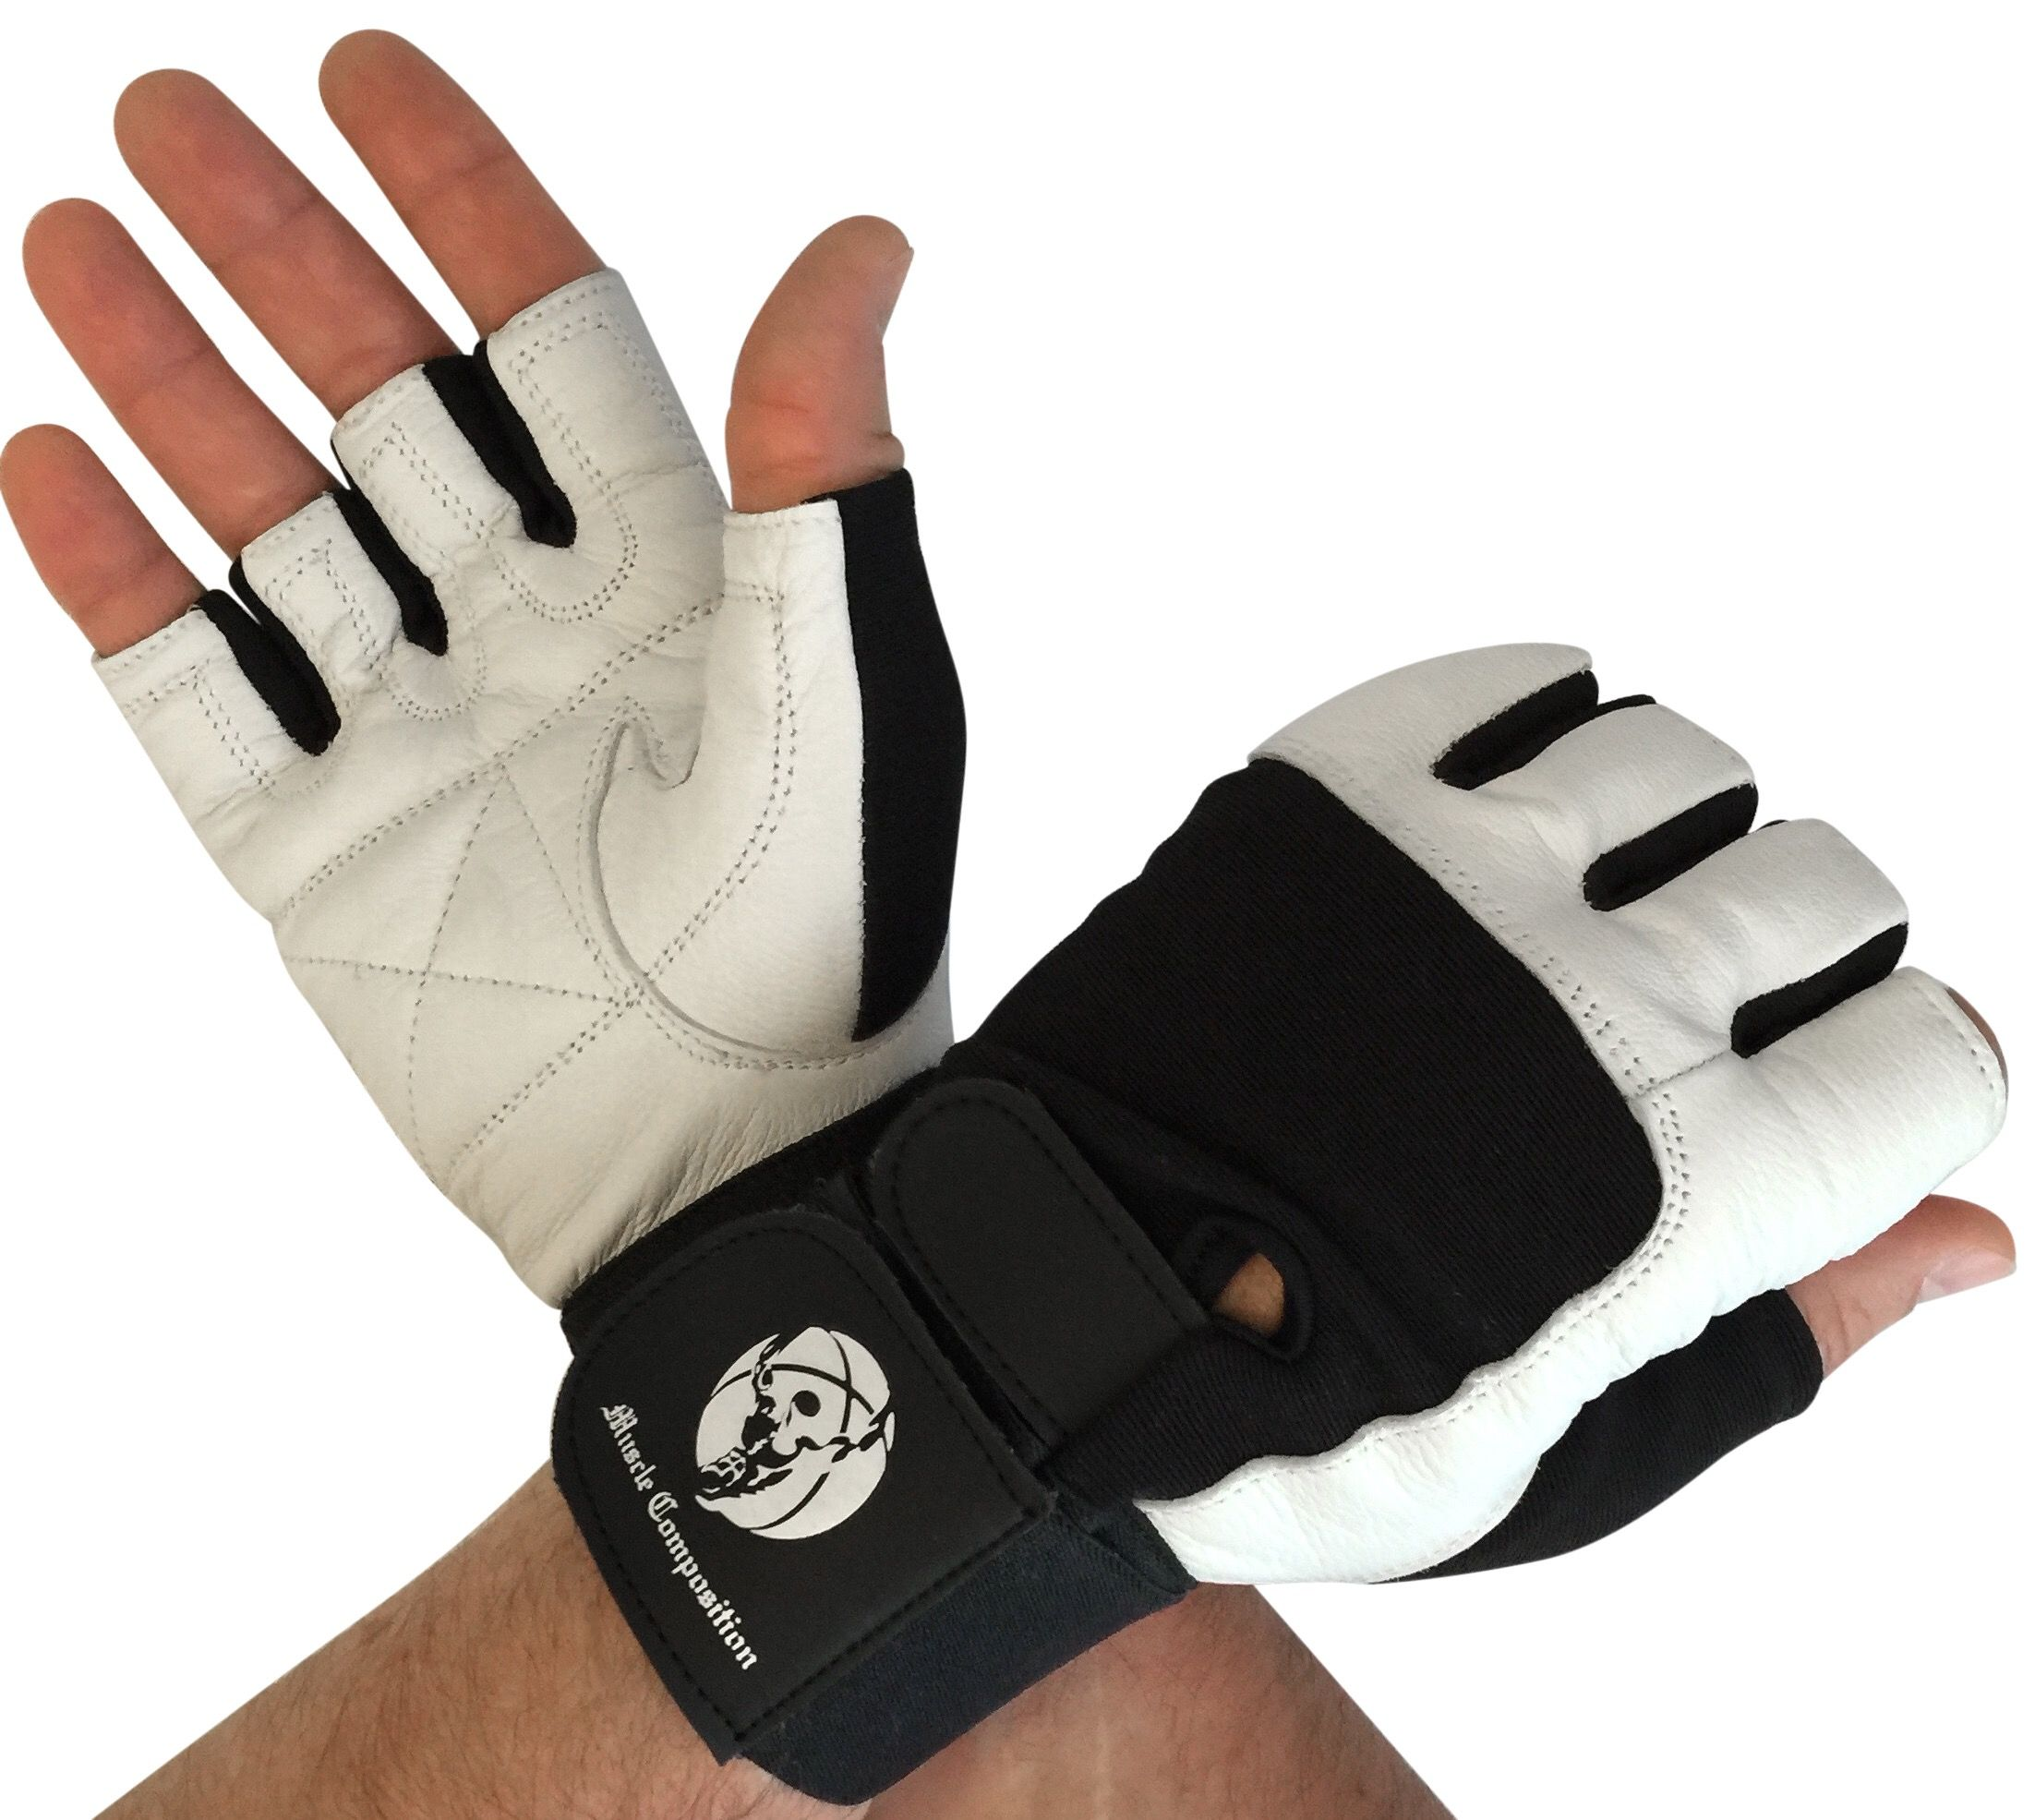 Pin by Muscle Composition Inc. on Gym Gloves/ Grip Pads